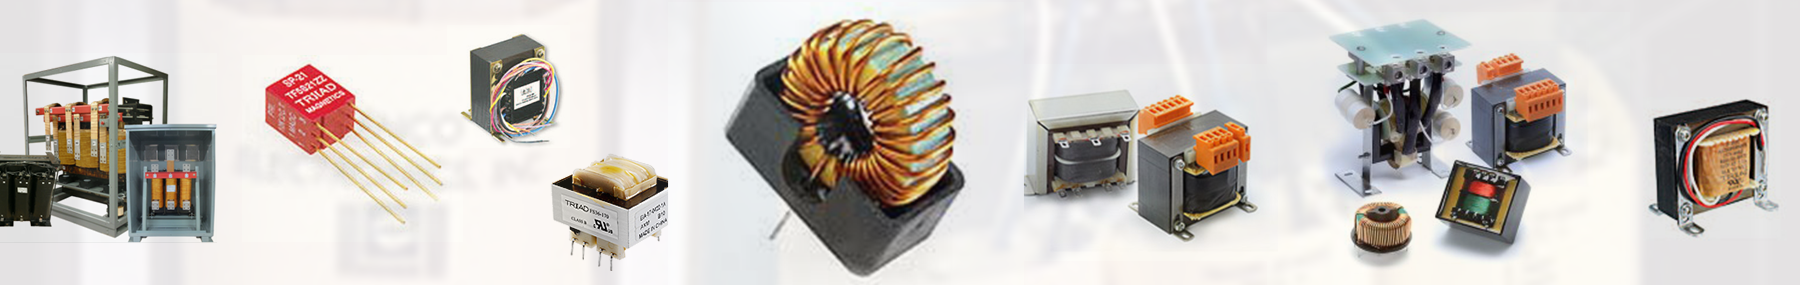 Electric Transformers banner